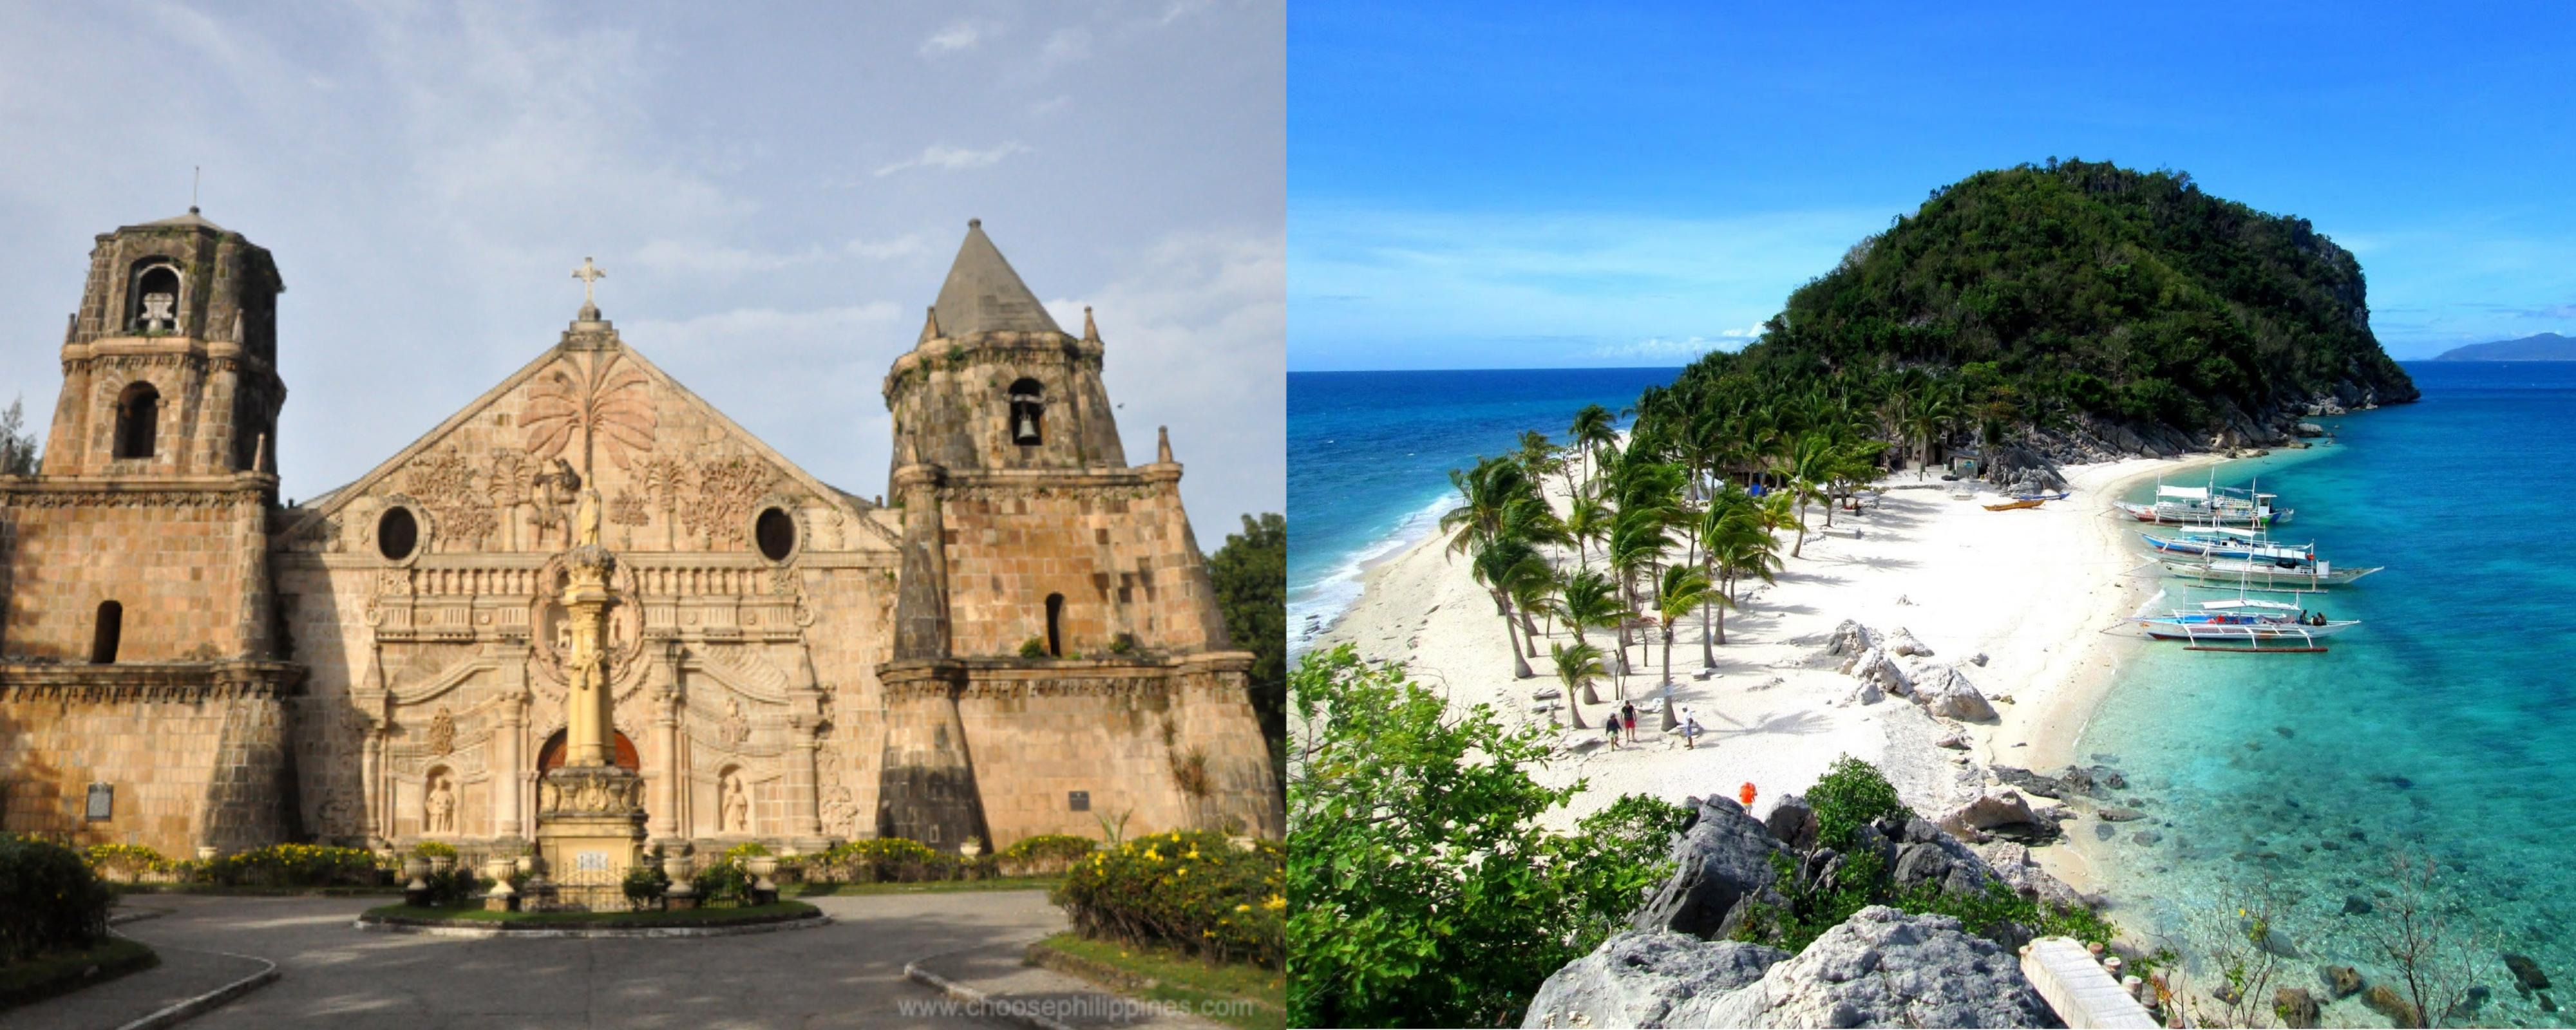 Some attractions to visit in Iloilo. Image via Choose Philippines and Manila Bulletin.